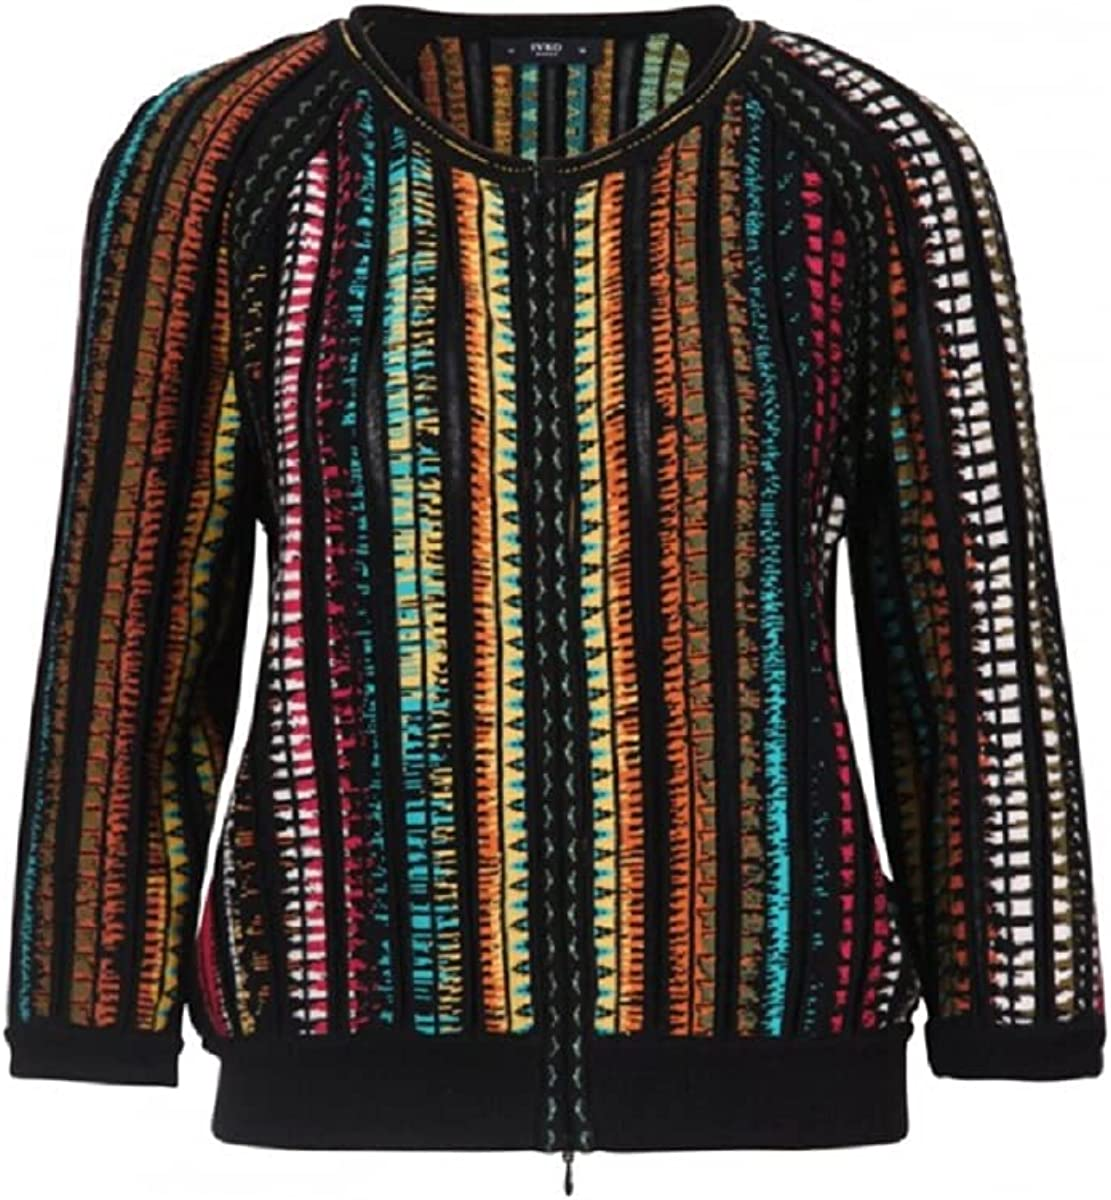 IVKO Crew Neck Bomber Jacket Dancing Colors in Black Cotton Double-Sided Zipper Zip Up 3/4 Sleeve Sweater Jumper Cardigan (US, Numeric_8)